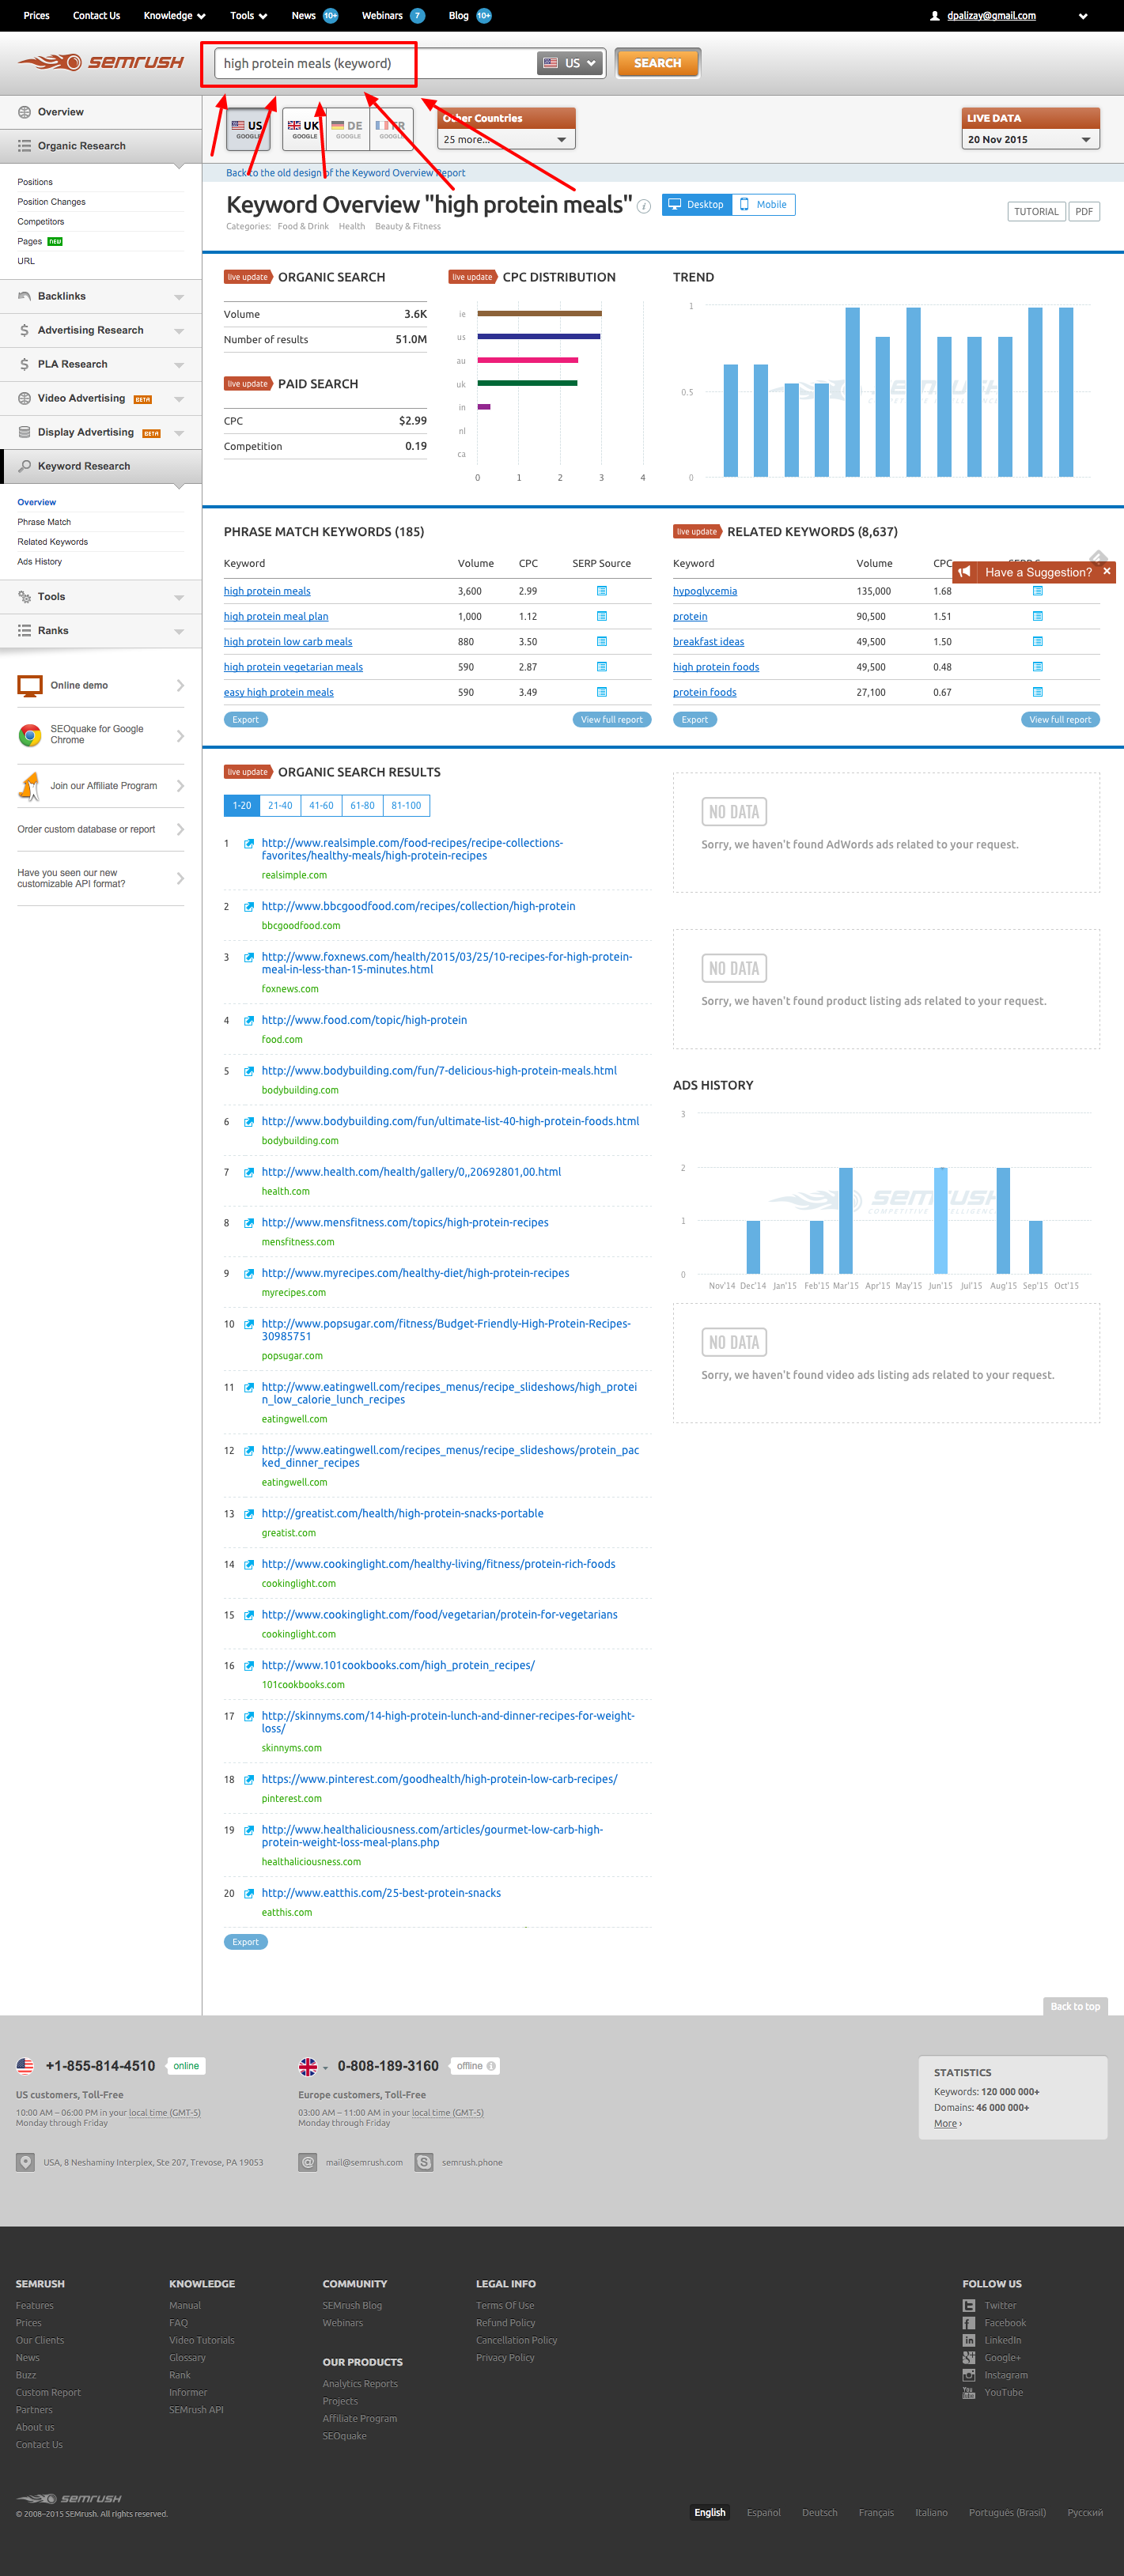 SEO Mastery, using SEMrush for Competitive Research